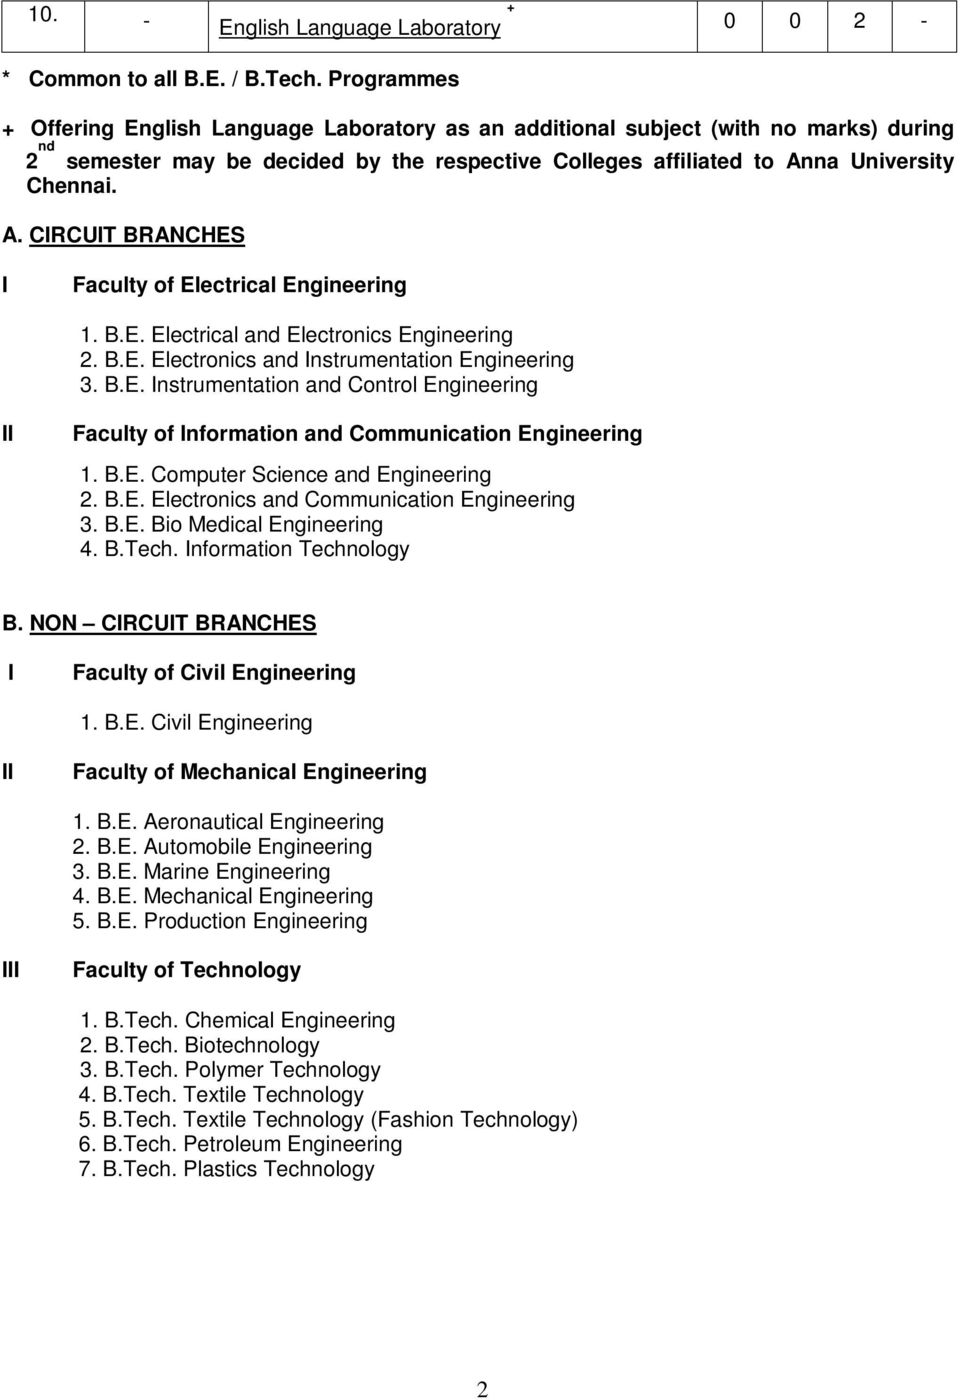 Anna University Chennai Affiliated Institutions R Pdf Electronic Devices And Circuits Salivahanan Free Download A Circuit Branches I Faculty Of Electrical Engineering 1 Be